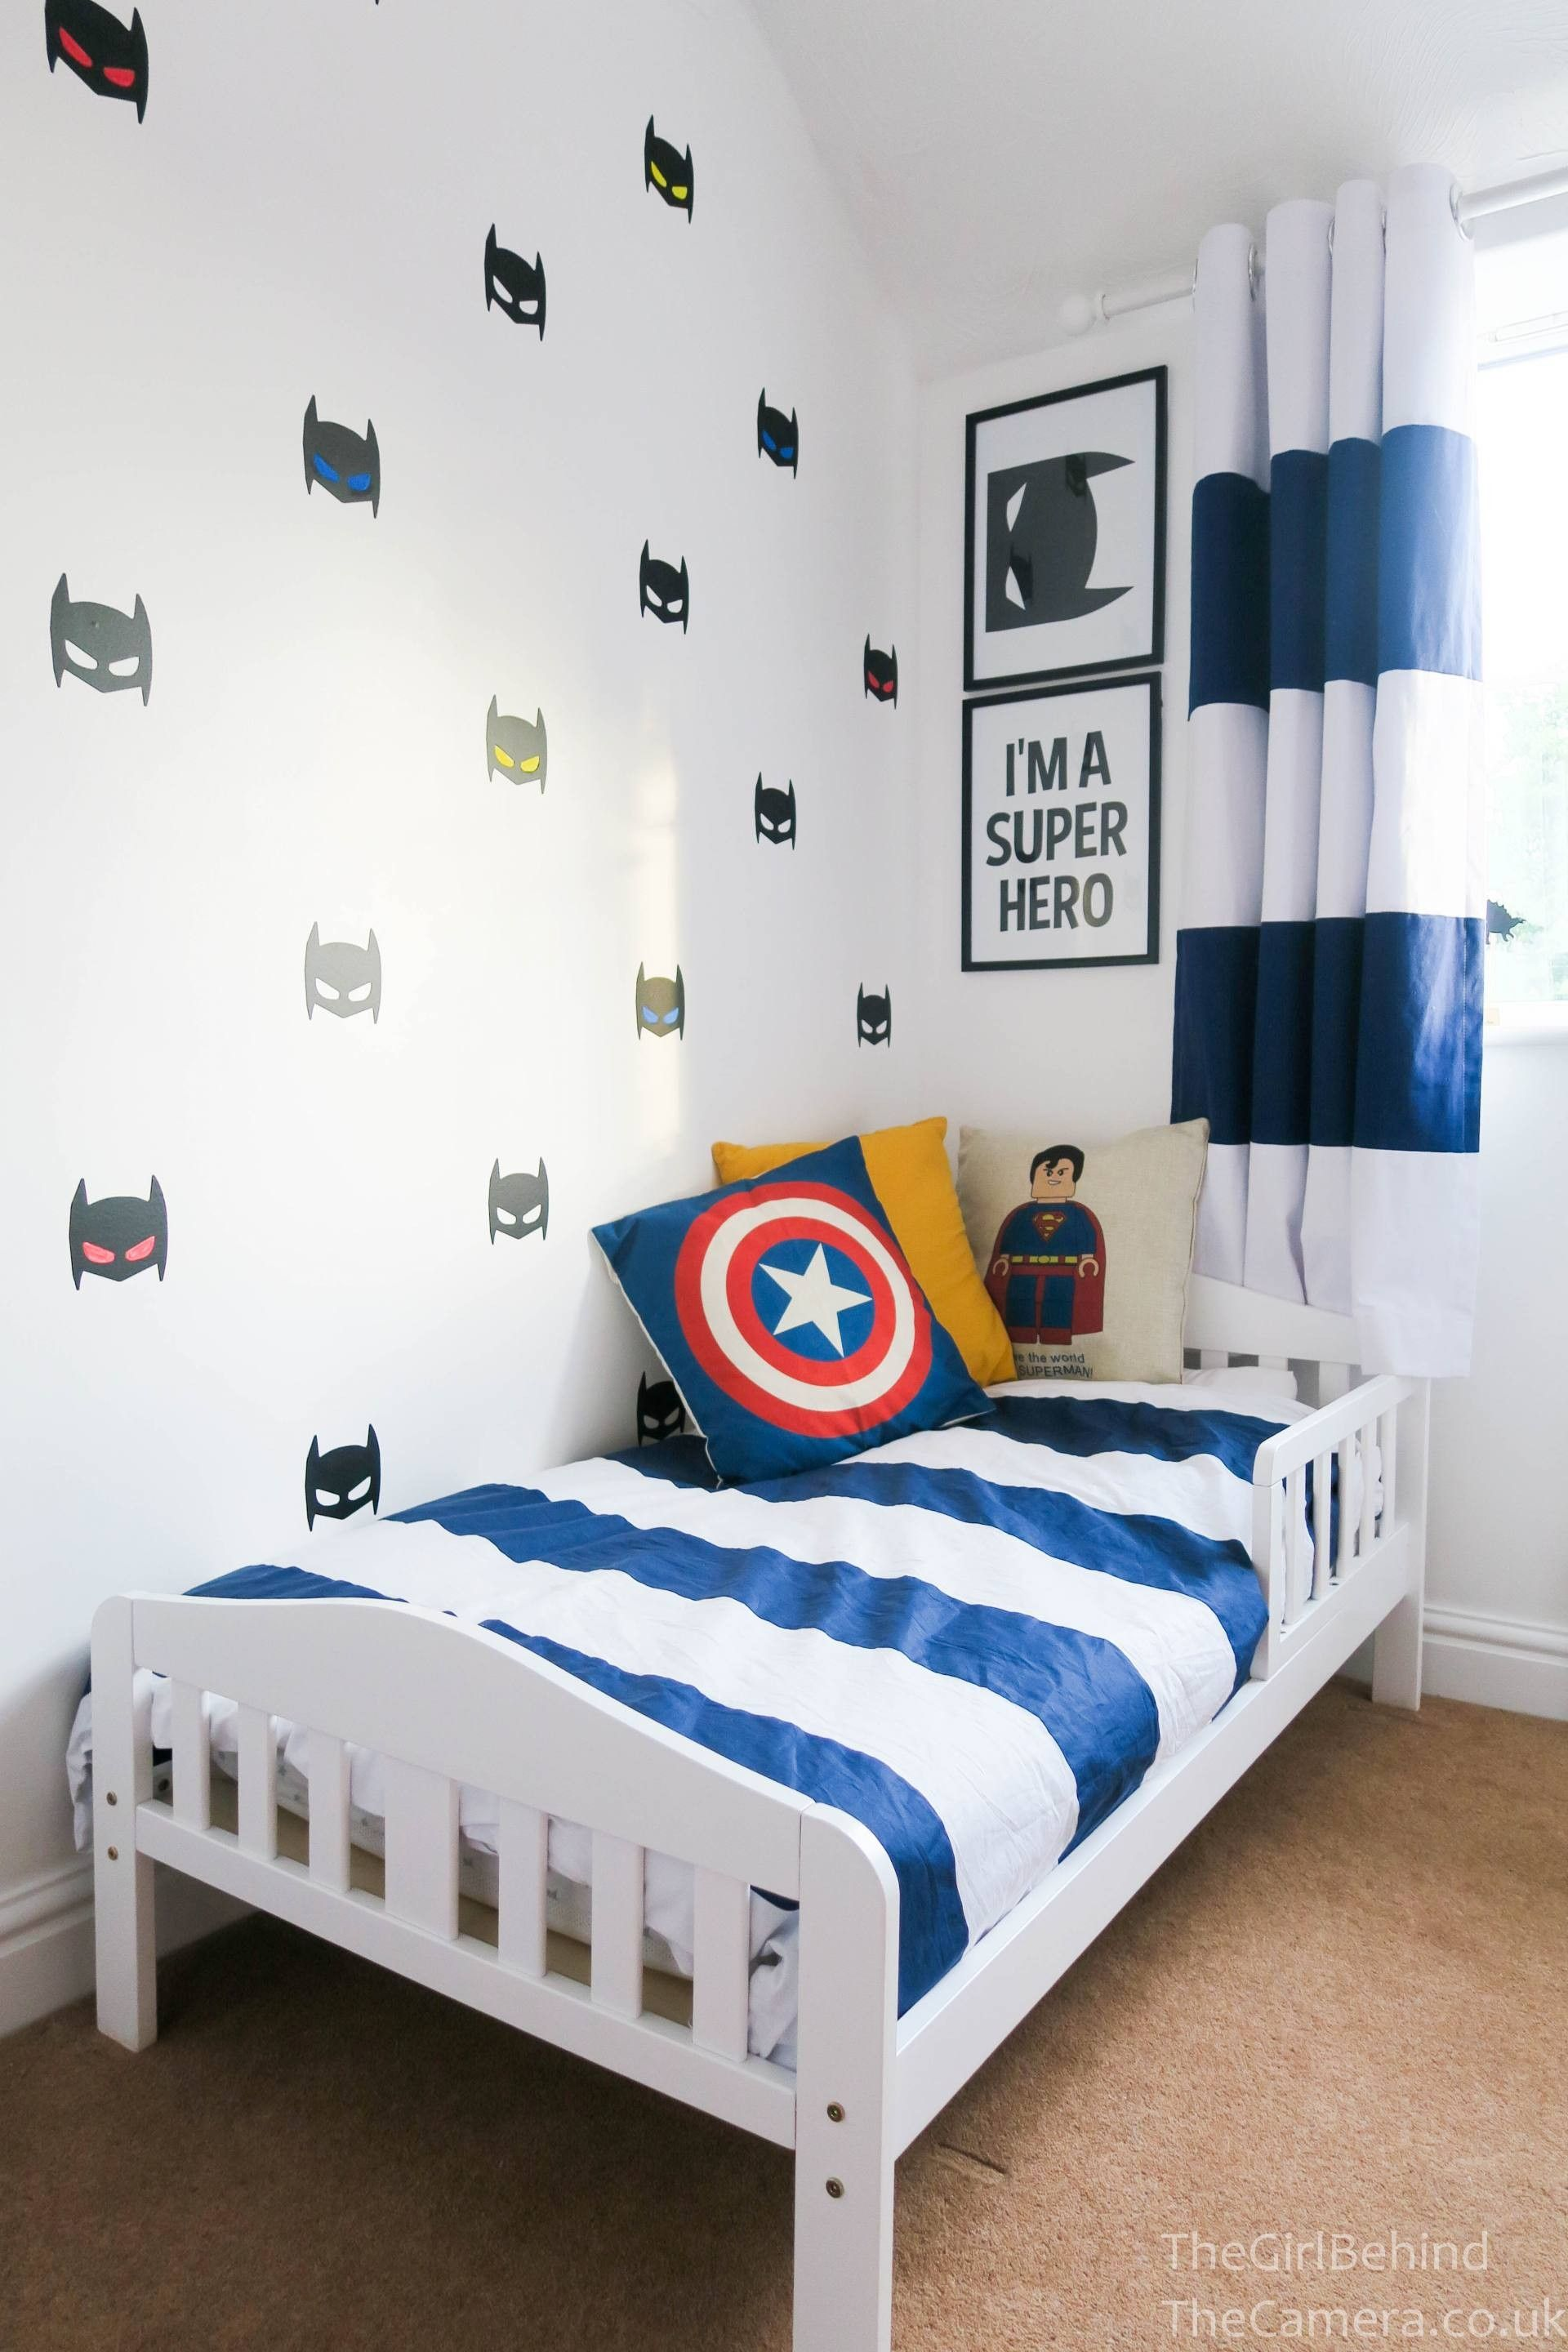 Discover The Most Stylish Decorations In Bedrooms For Boys To Create A Unique Interior Design Discover More At Kamar Anak Kamar Anak Laki Kamar Anak Laki Laki